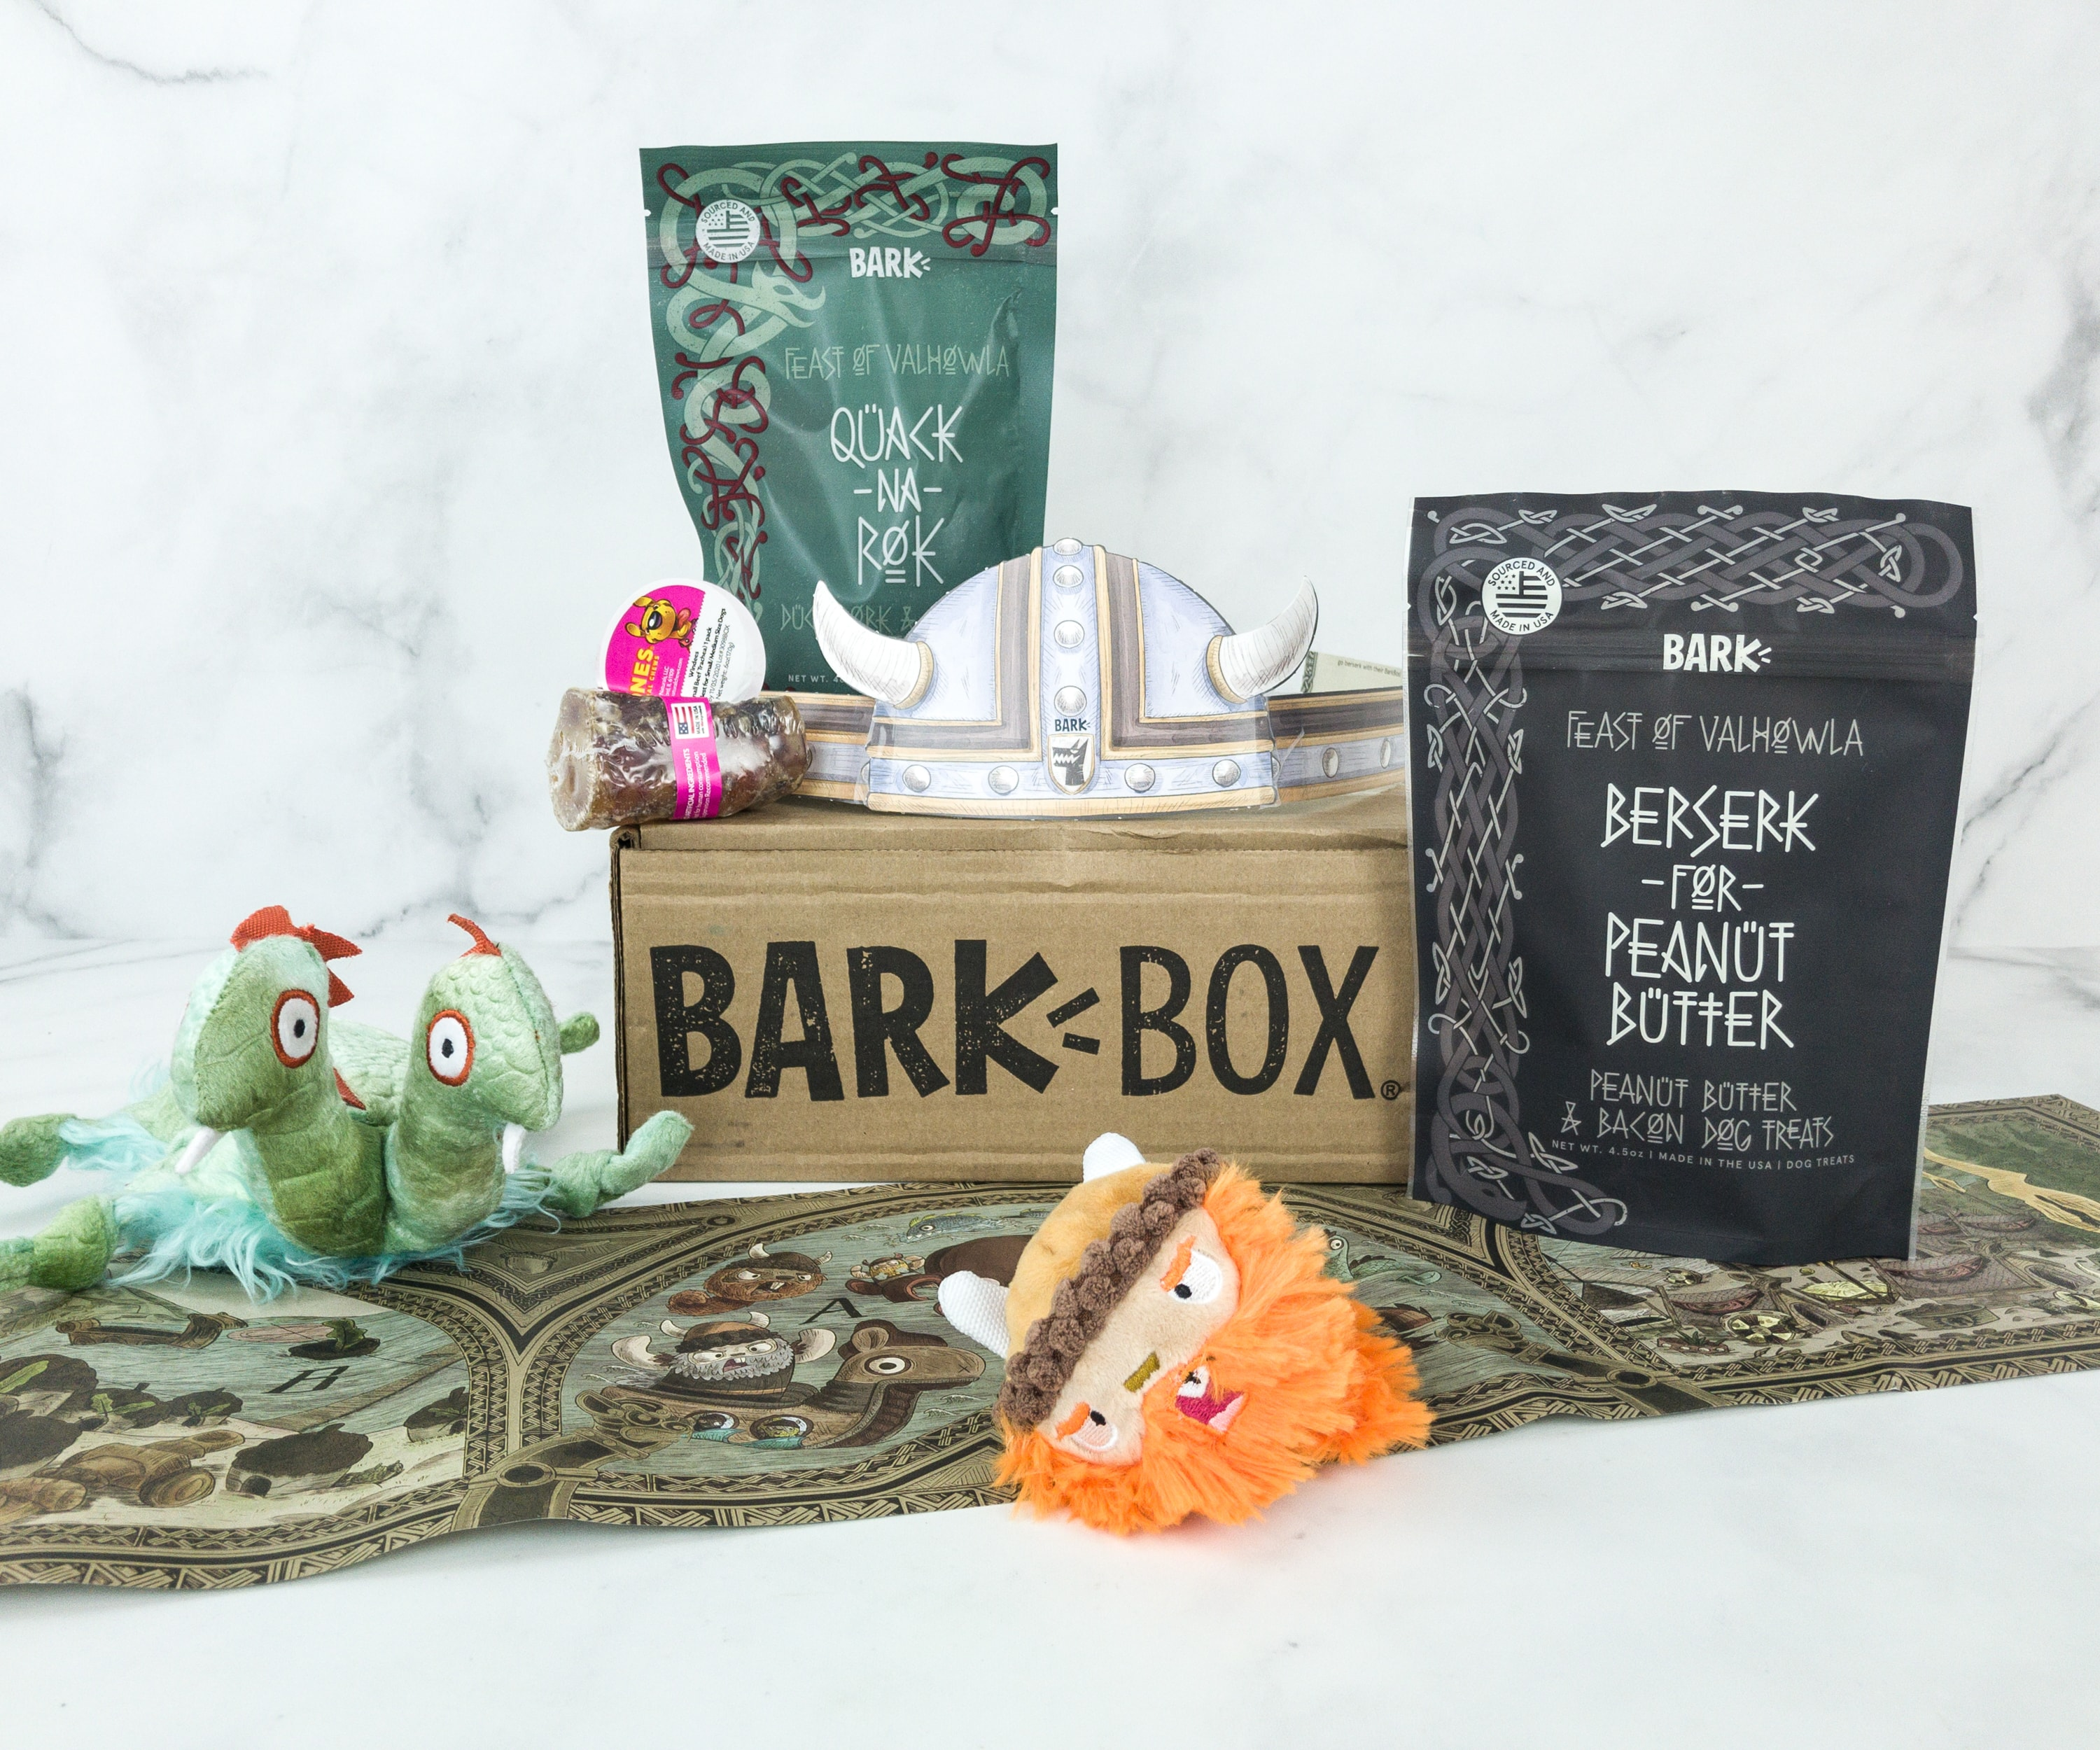 Barkbox January 2019 Subscription Box Review + Coupon